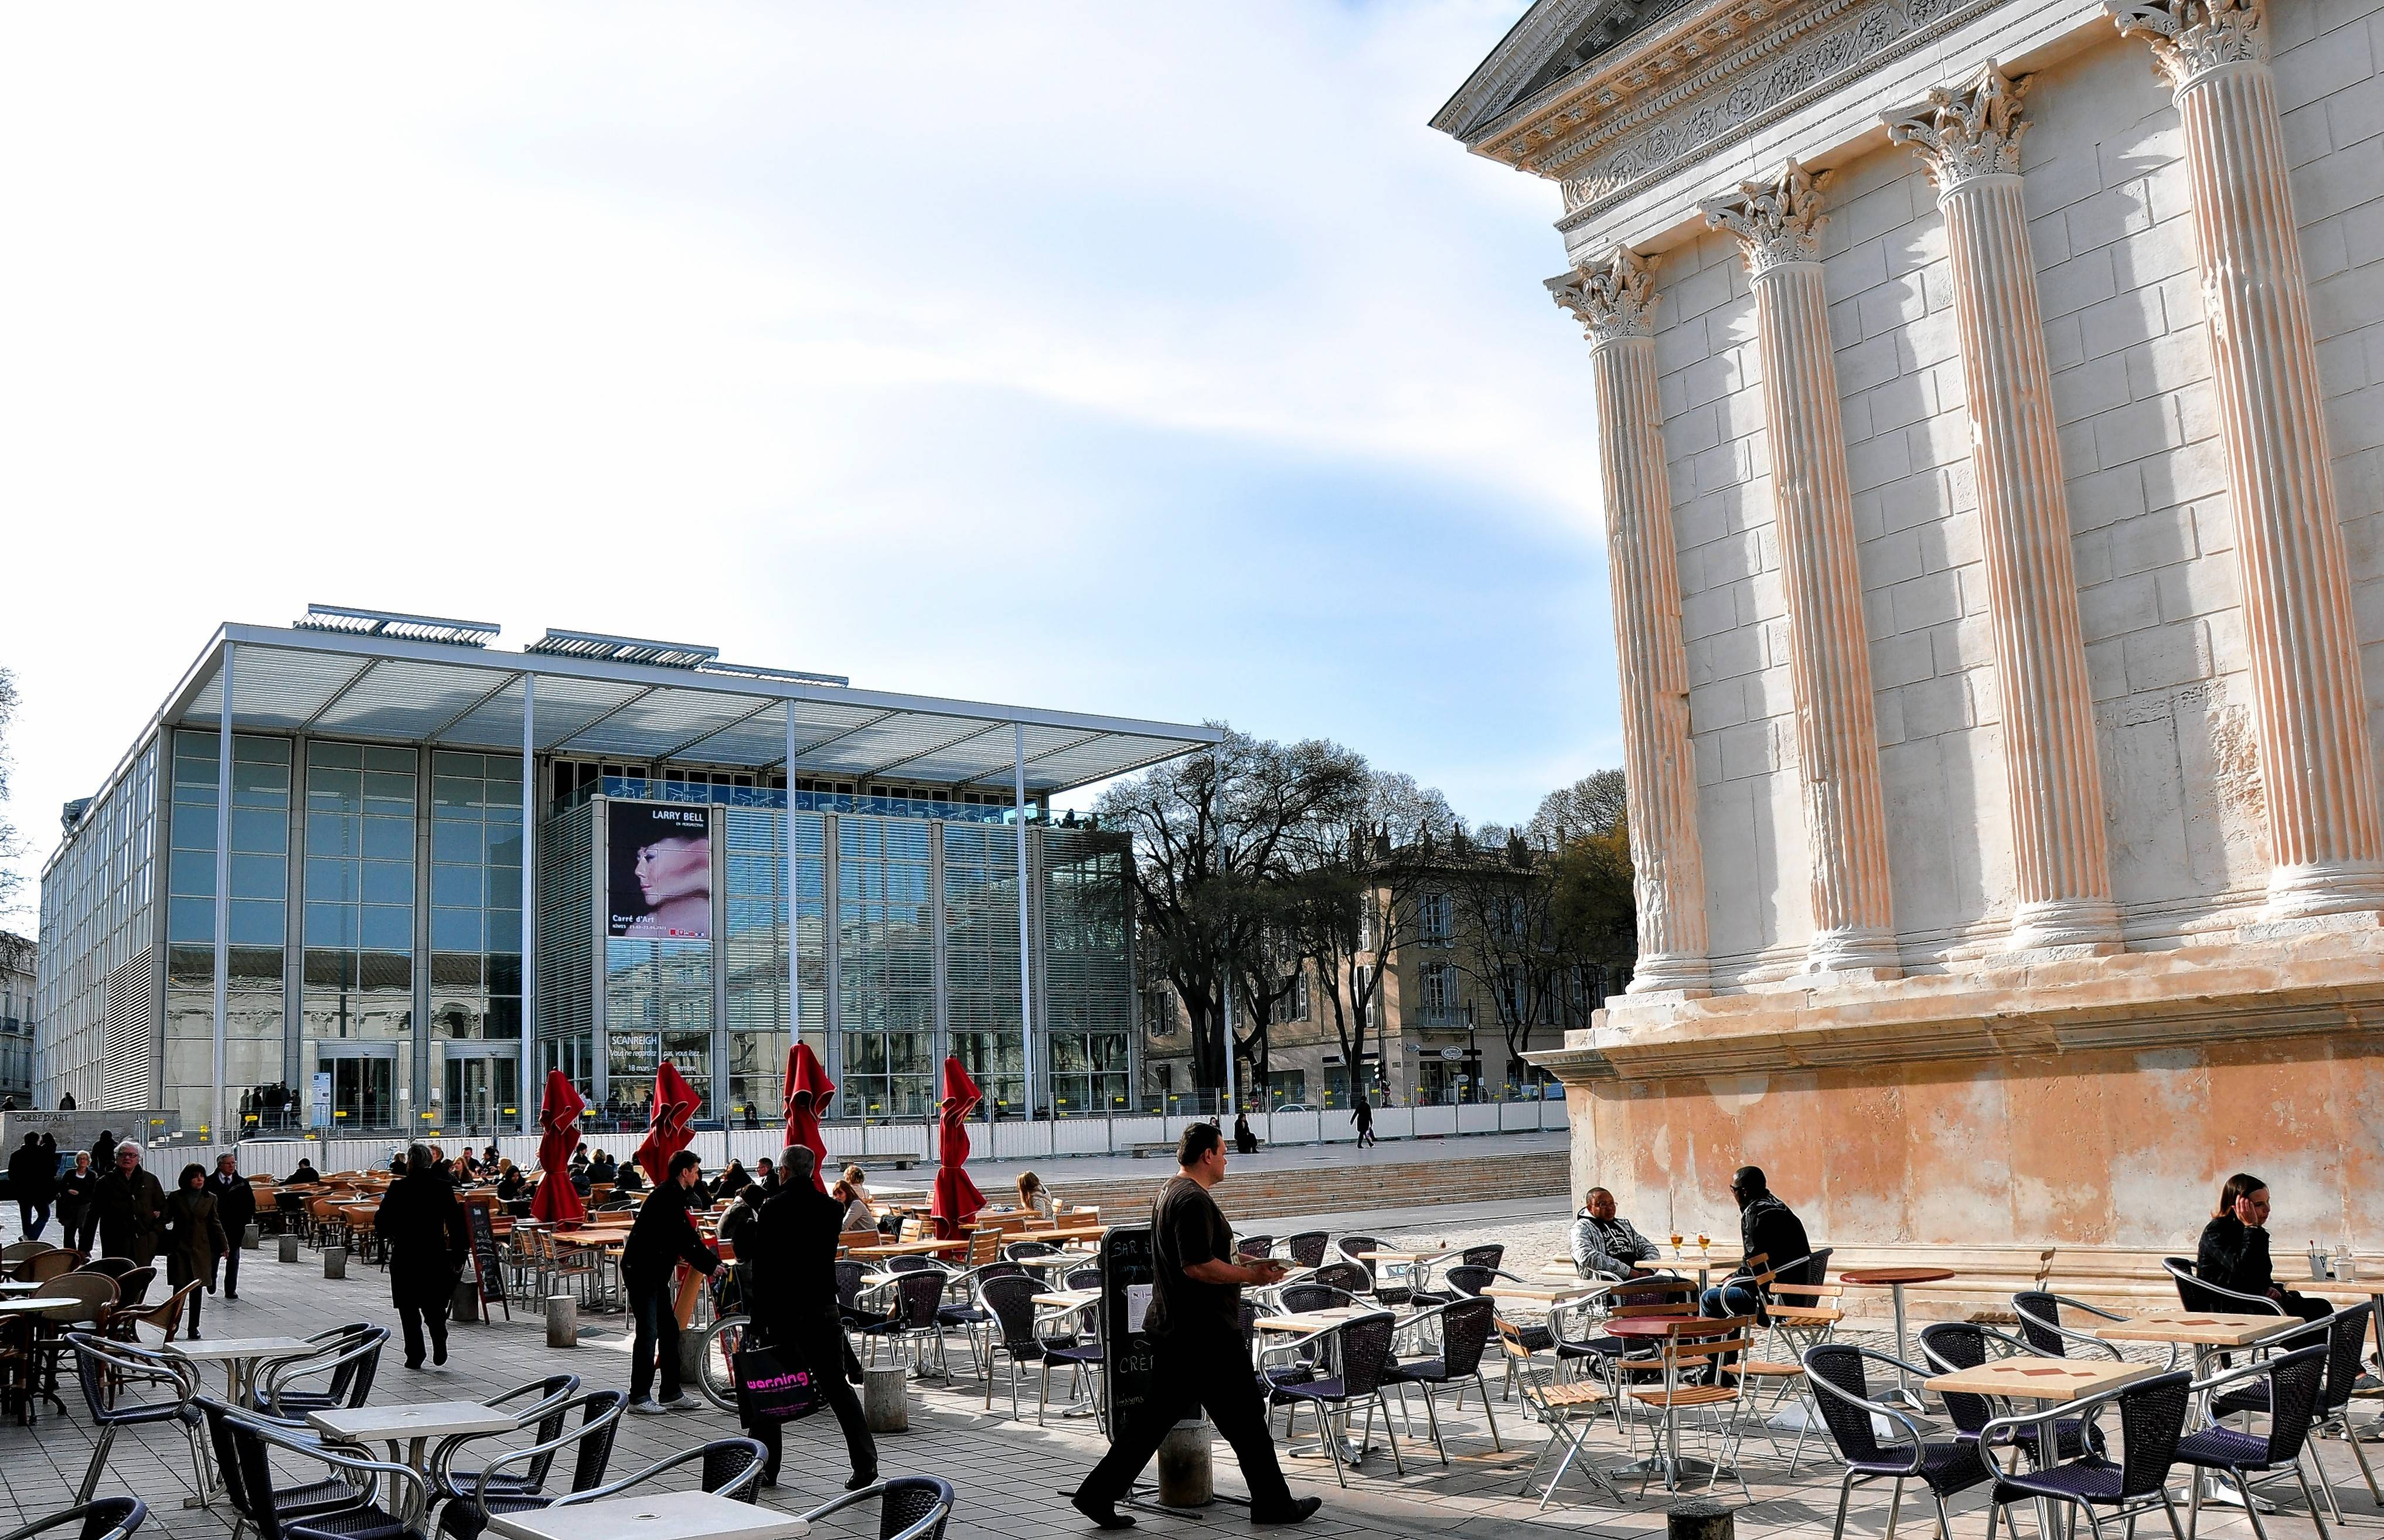 In Nîmes, the architecture of Carré d'Art is a modern interpretation of the 1st century Roman temple in the square opposite it.